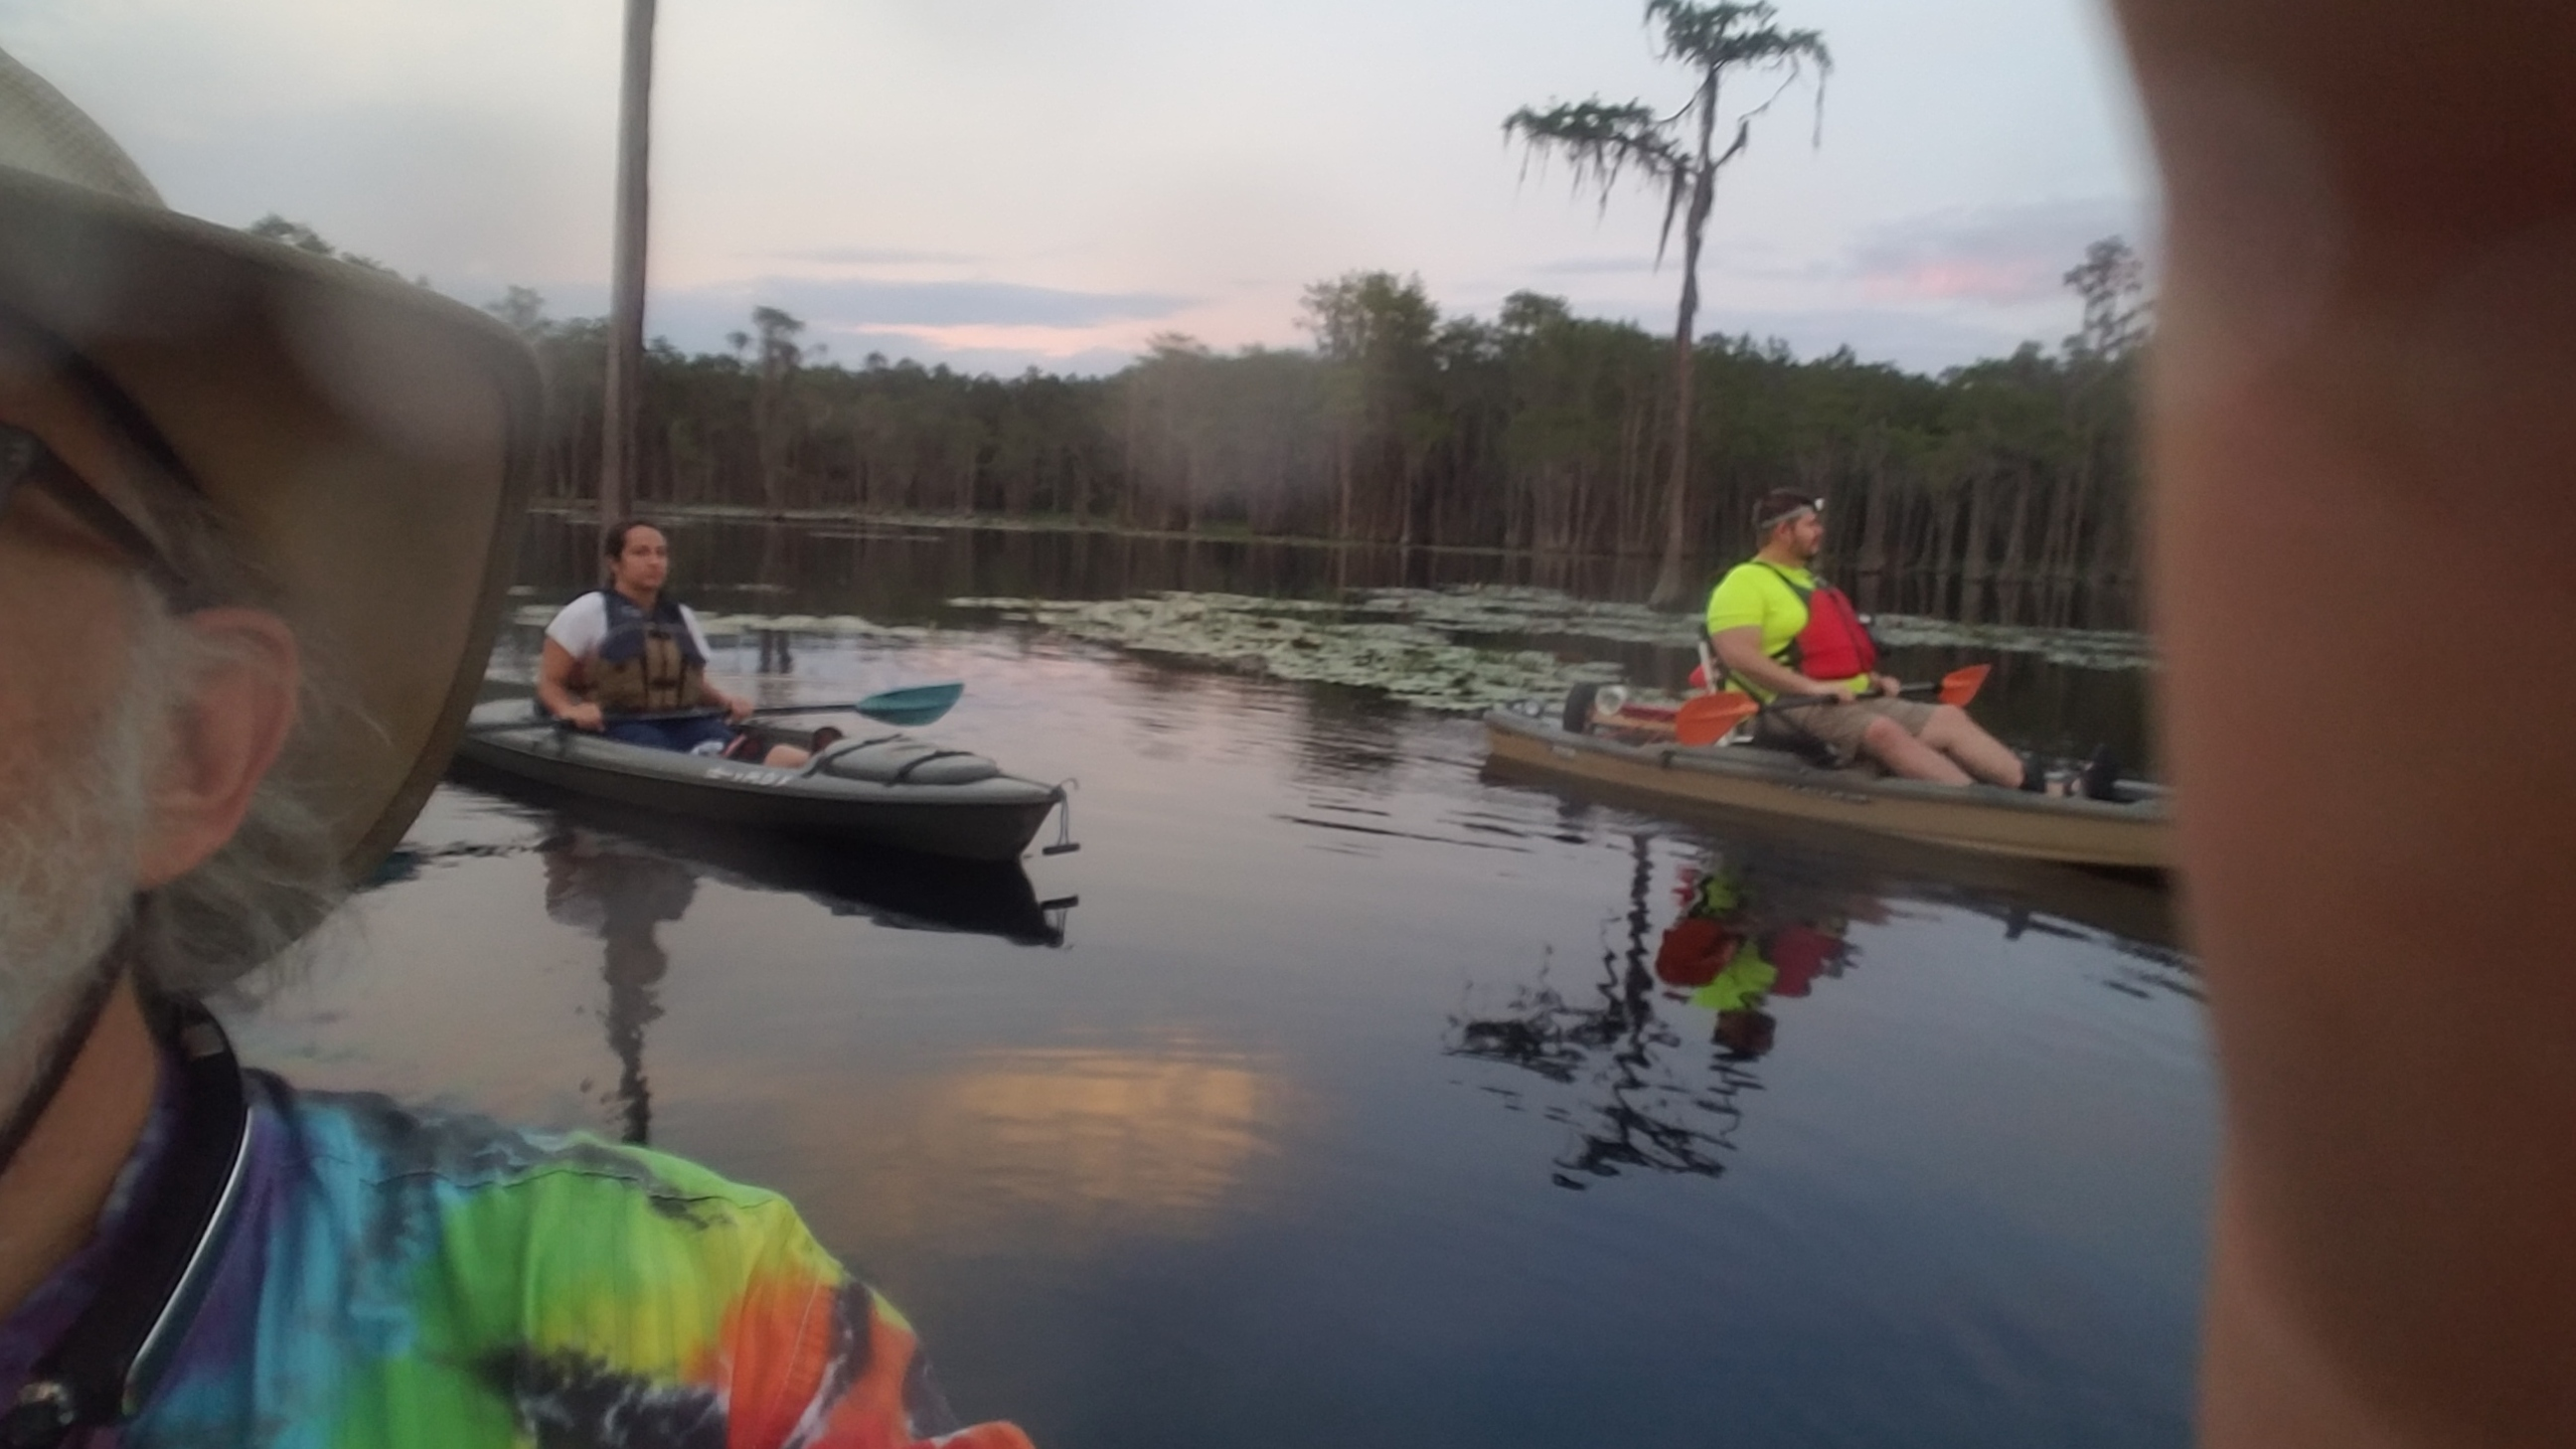 2592x1458 Loaner boat with new paddler, On the water, in Banks Lake Sunset Paddle, by John S. Quarterman, for WWALS.net, 27 July 2018